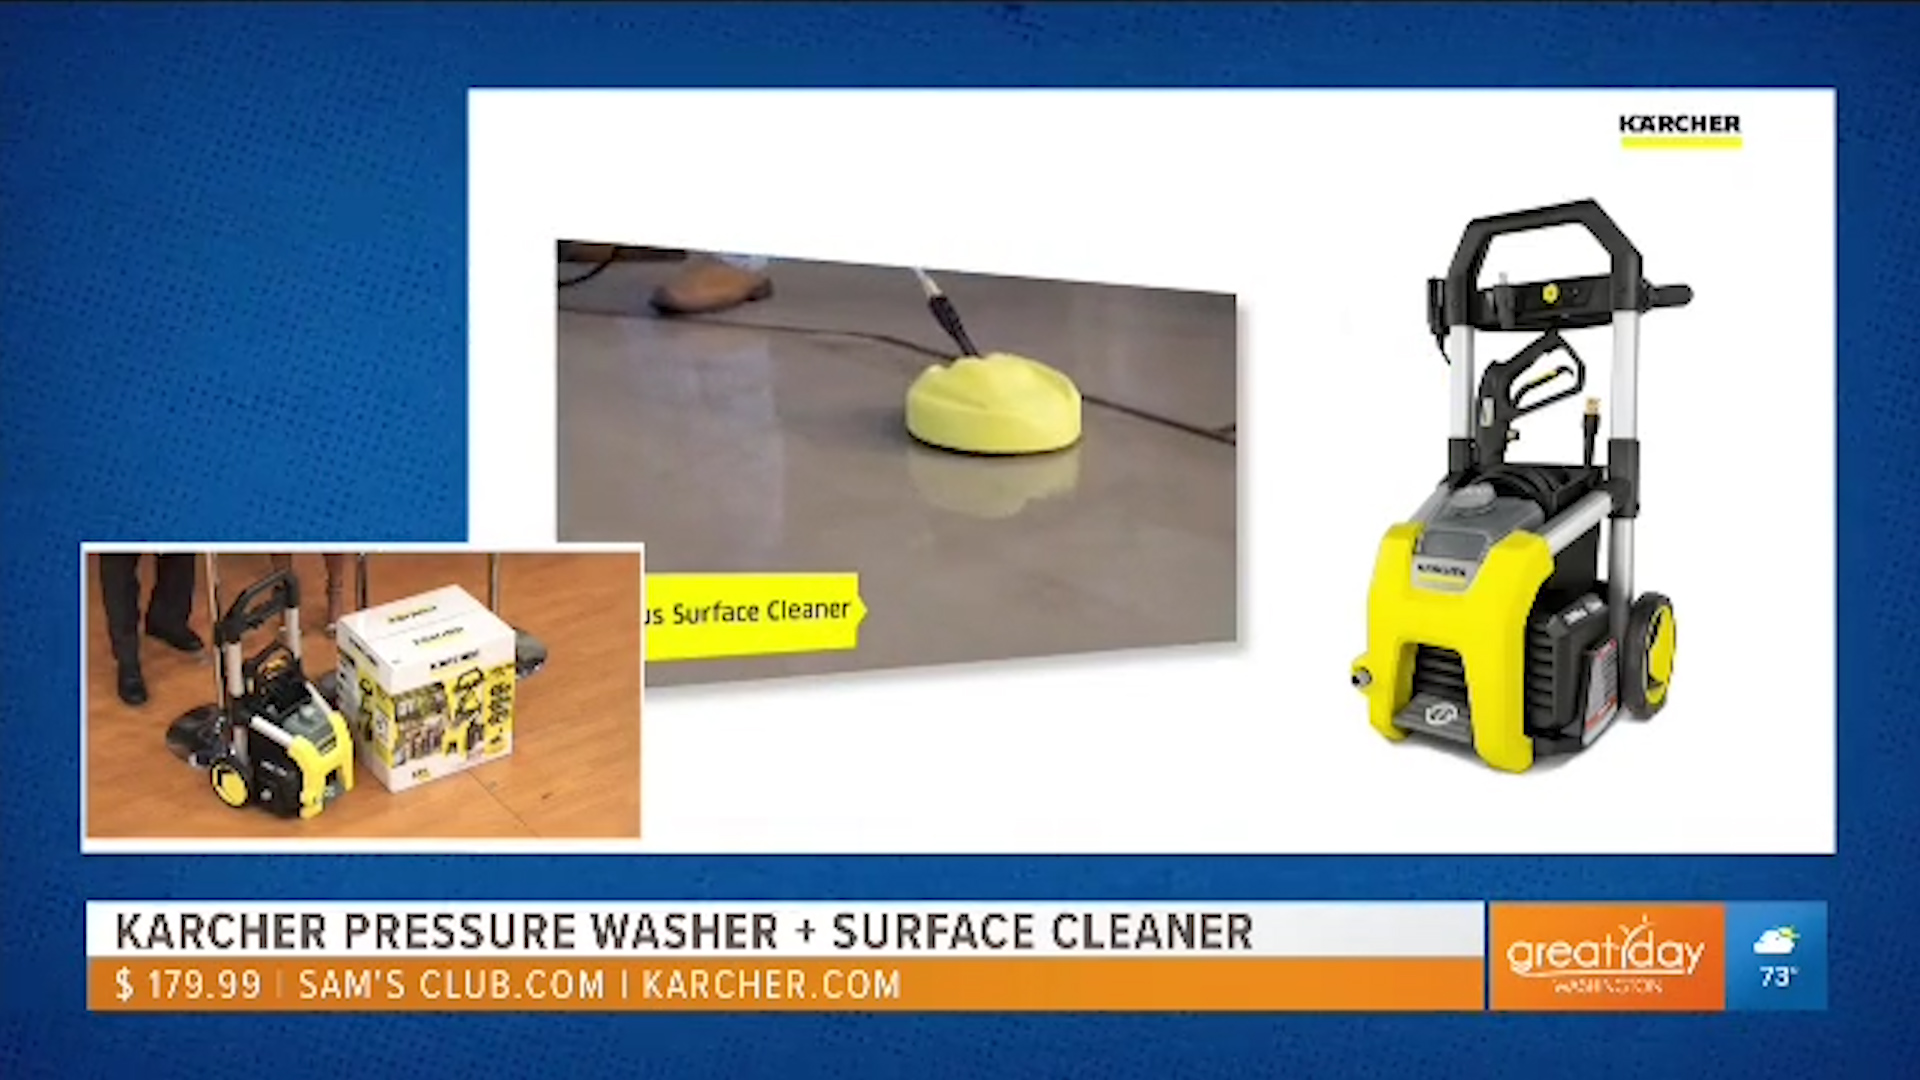 KARCHER K-1800 PRESSURE WASHER + SURFACE CLEANER - $179.99 at Sam's Club and Karcher.comShop Now